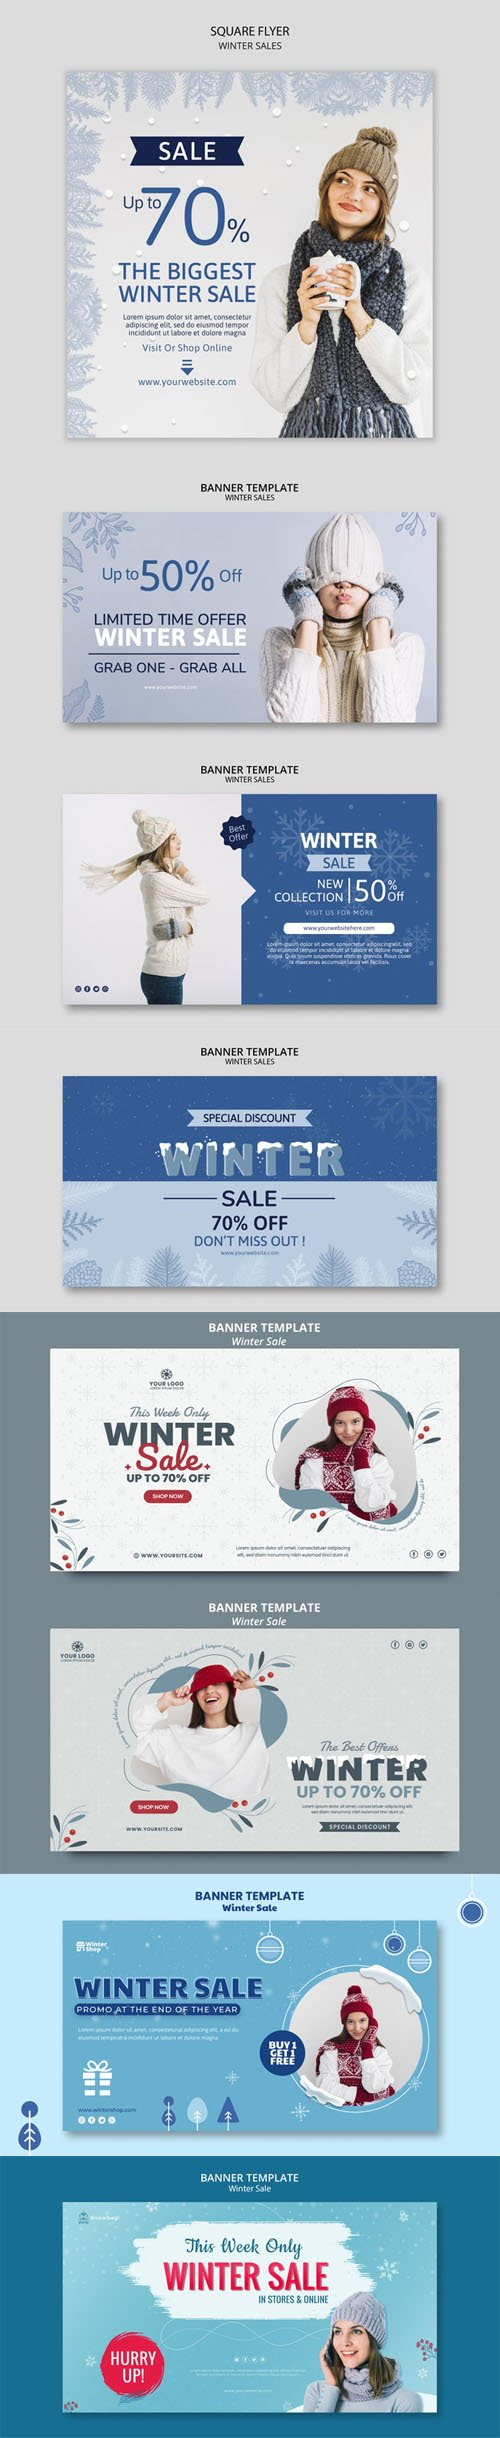 8 Winter Sales Banners PSD Templates Collection